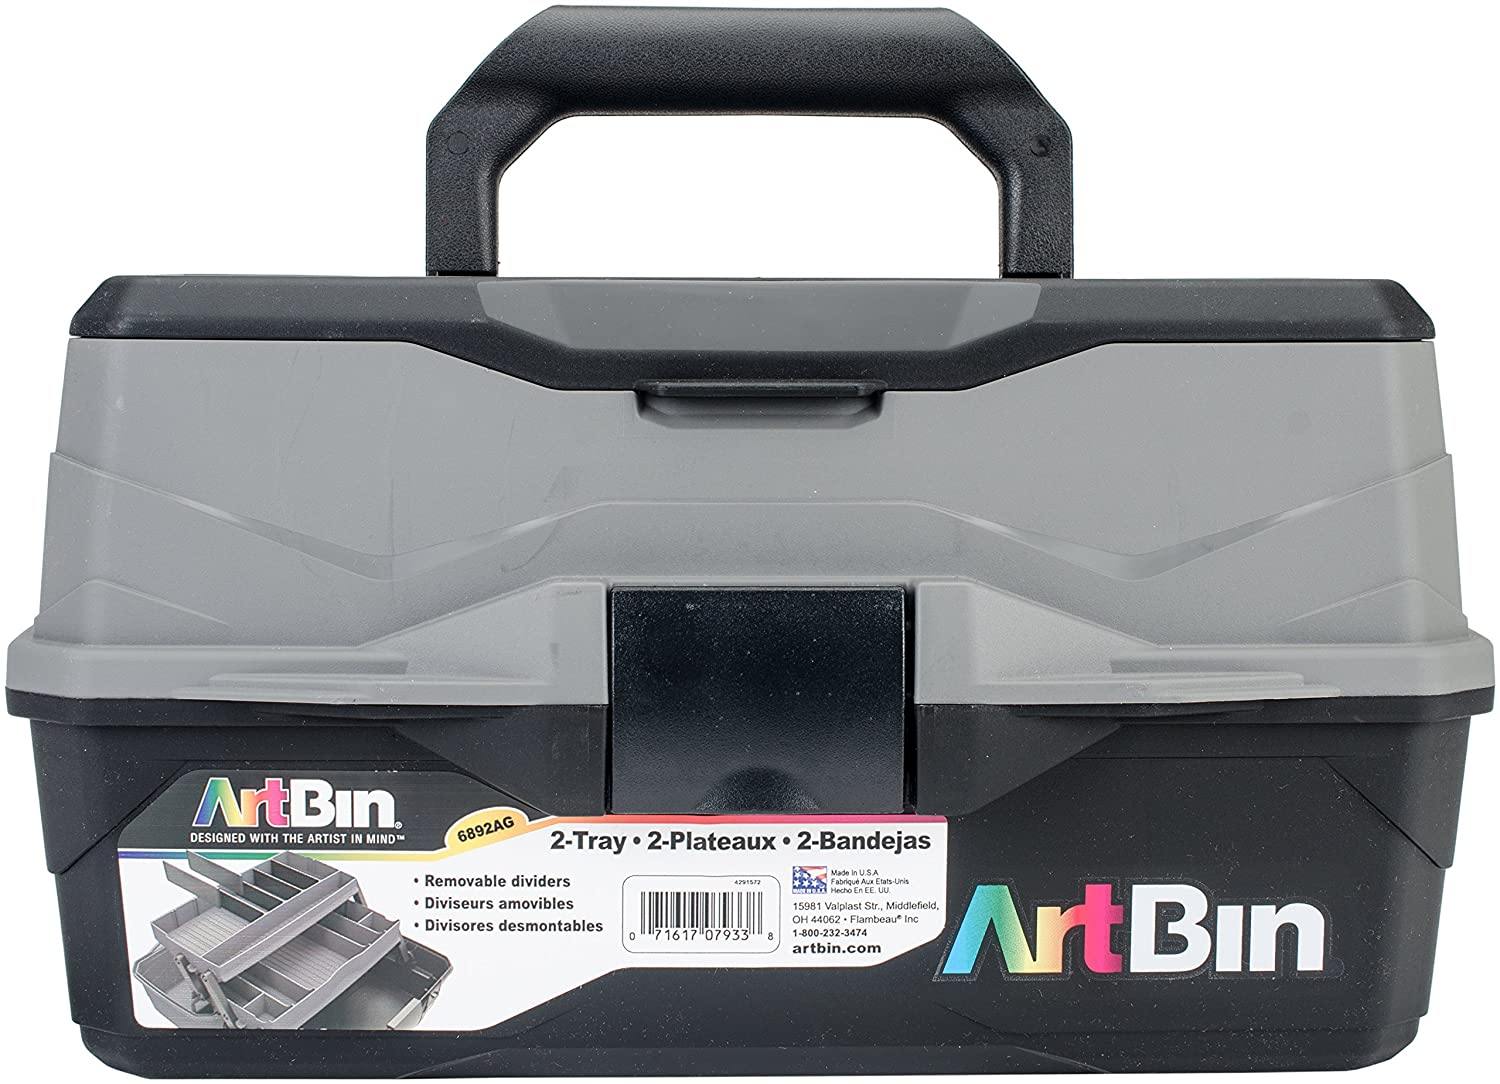 ArtBin One Tray Art Supply Box, 6891AG Flambeau Inc.